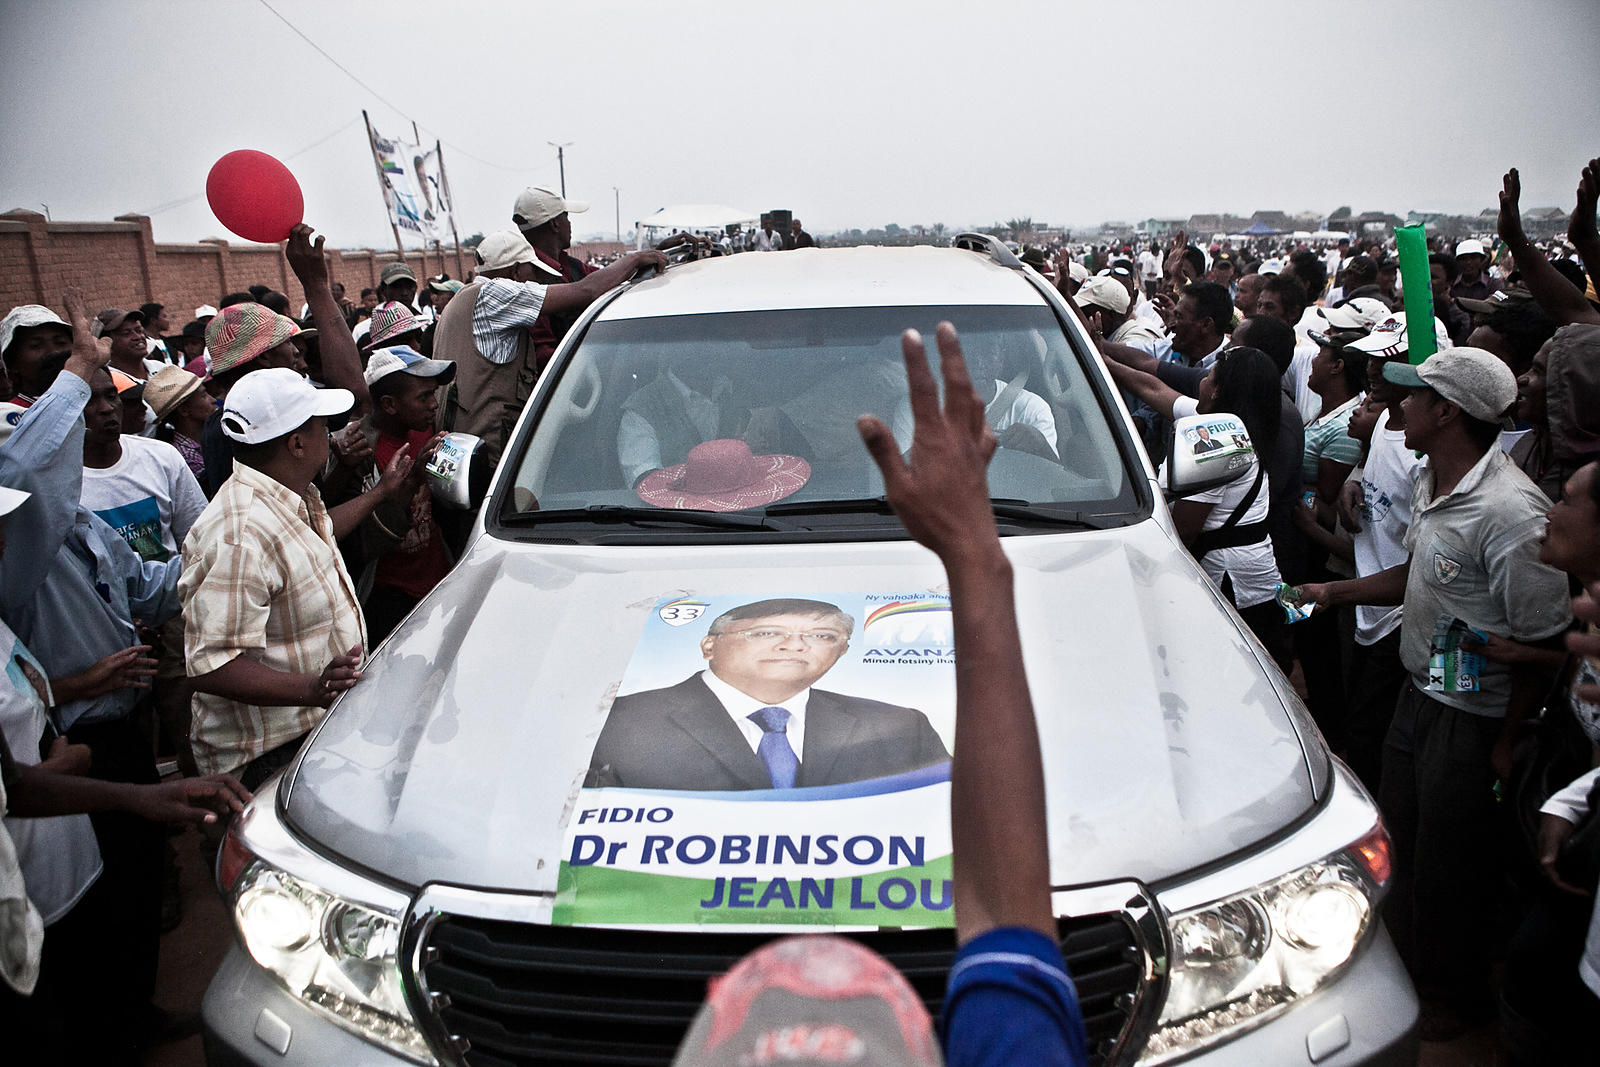 Supporters of presidential candidate Robinson Jean Louis cheer arounf his car during the last campaign rally on October 23, 2...